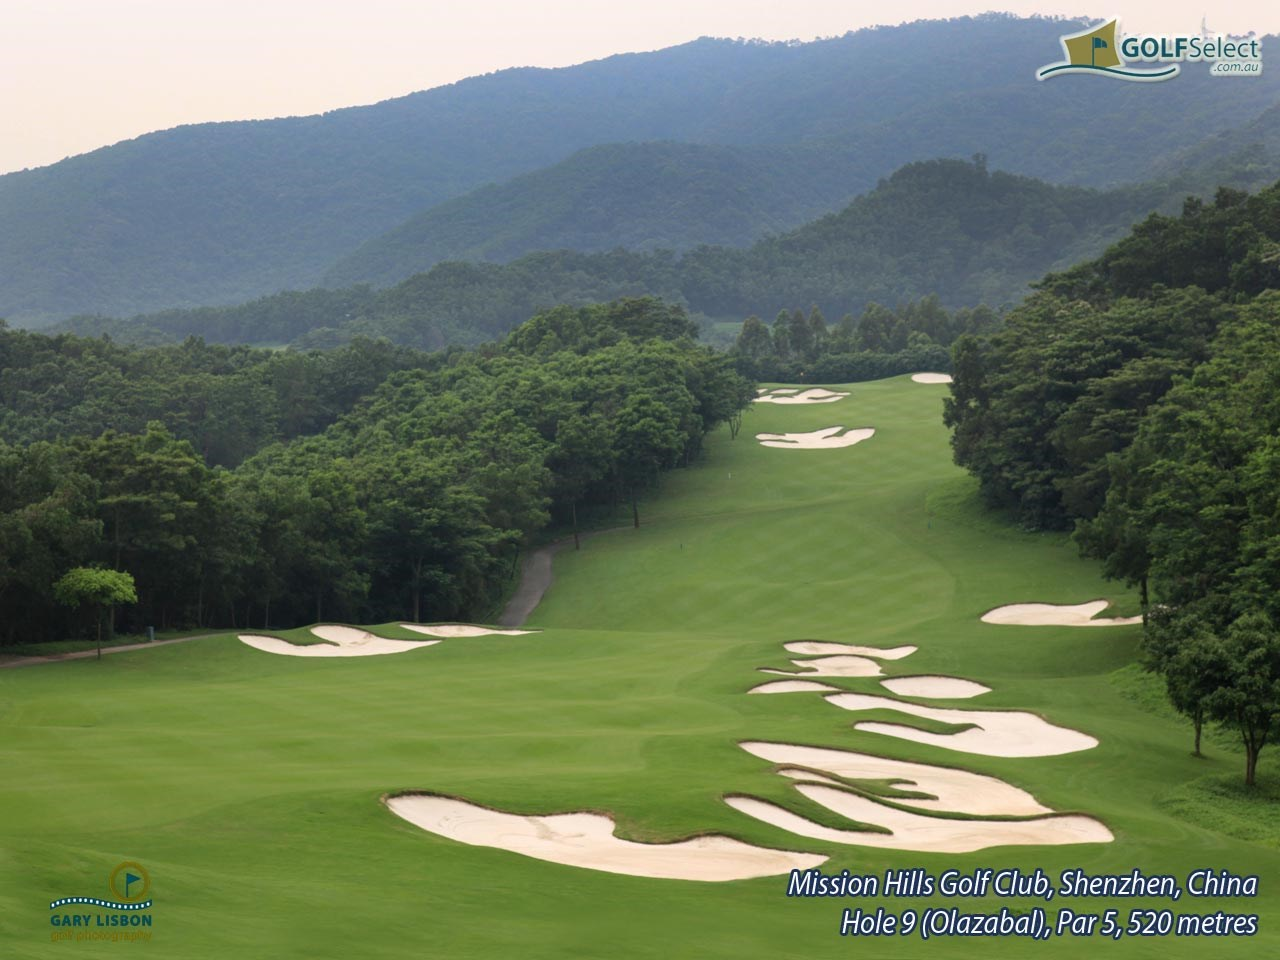 Course List For Hong Kong Can Be Found Here